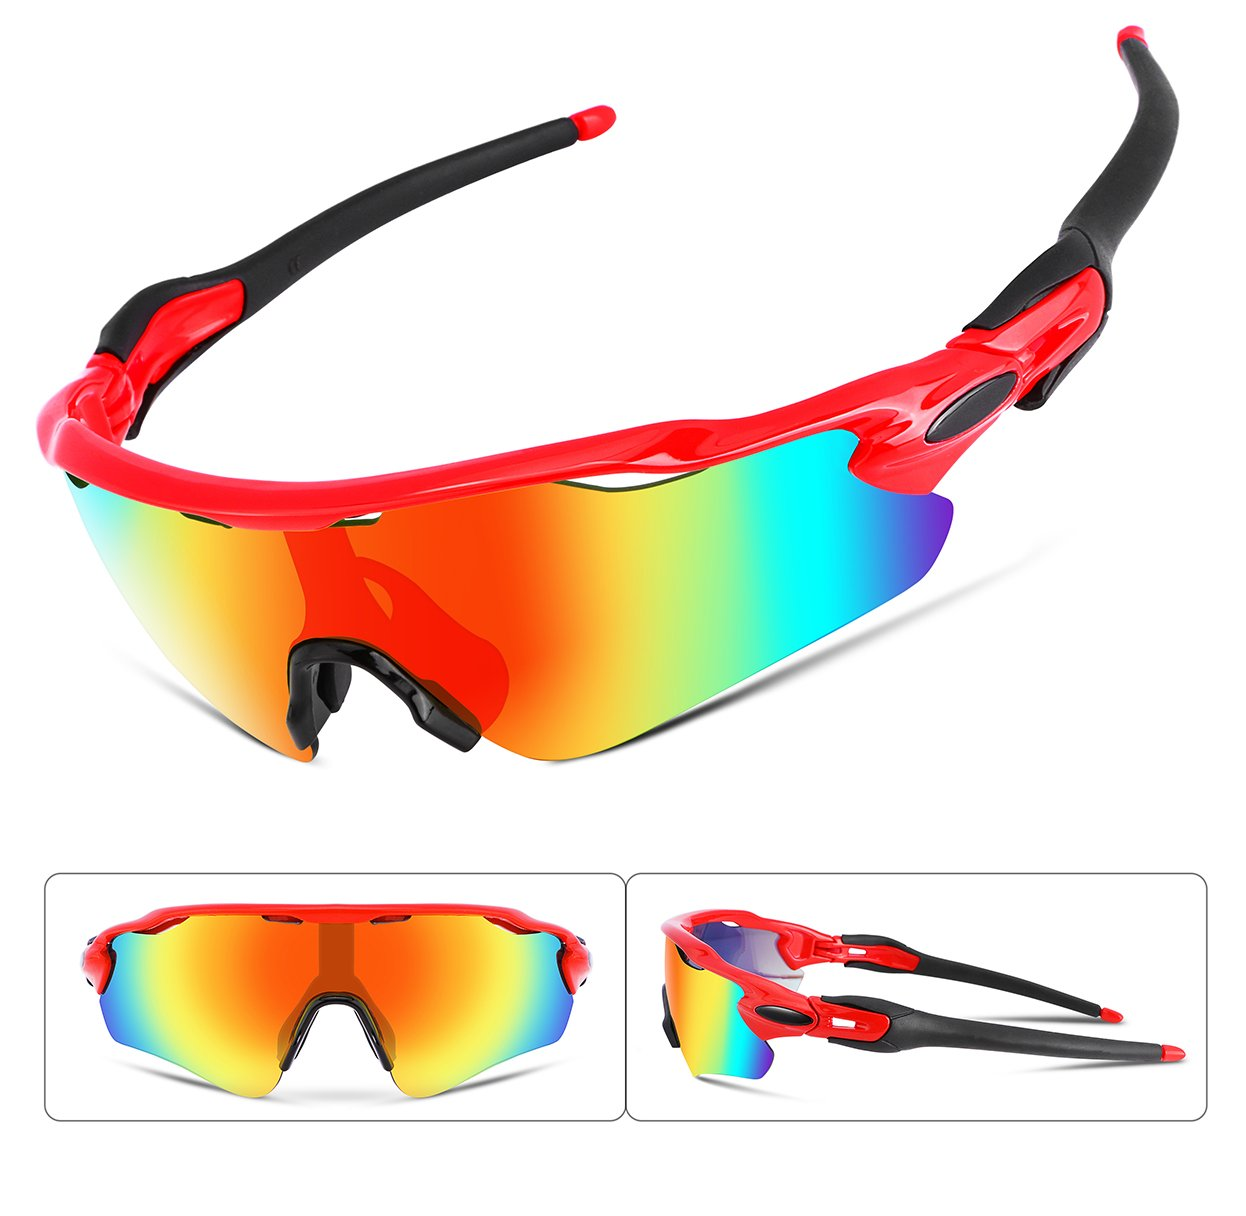 FEISEDY Polarized Sports Sunglasses Changeable Lenses TR90 Frame Cycling B2280 (1, 52) by FEISEDY